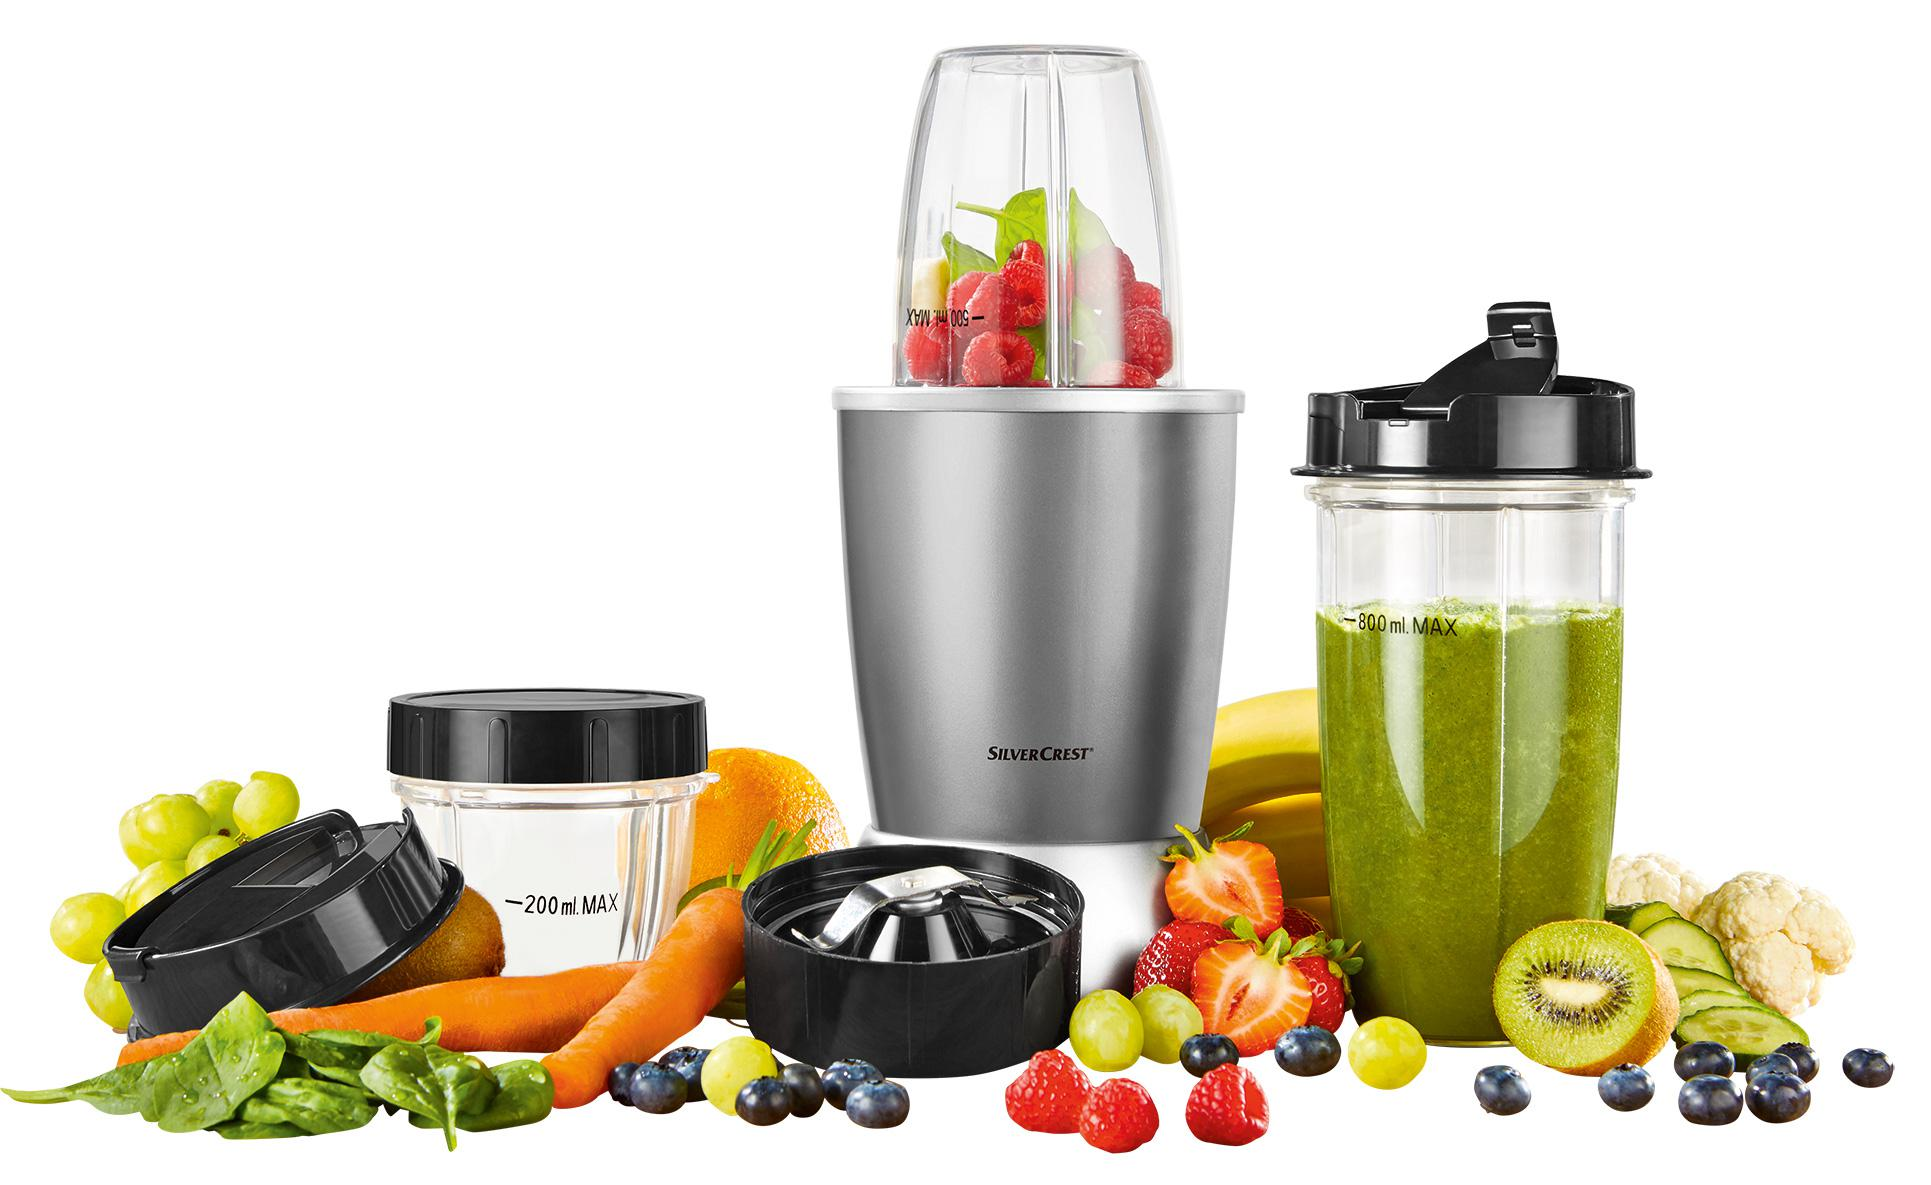 Lidl Silvercrest Nutrition Mixer Test Lidl Is Selling A Cheap Smoothie Maker And It Costs Half The Price